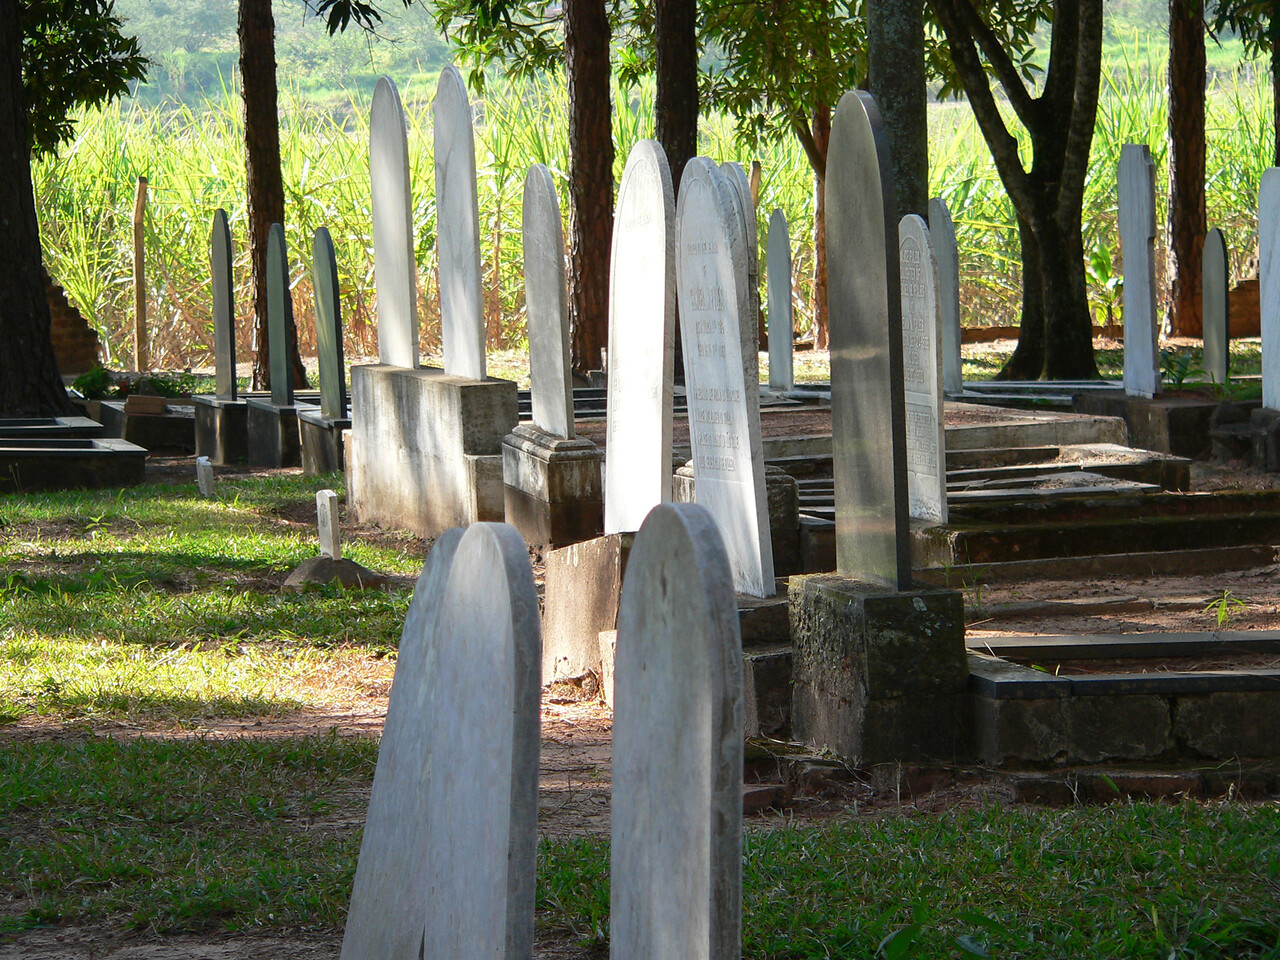 My favorite shot of gravestones in dappled afternoon sunlight.